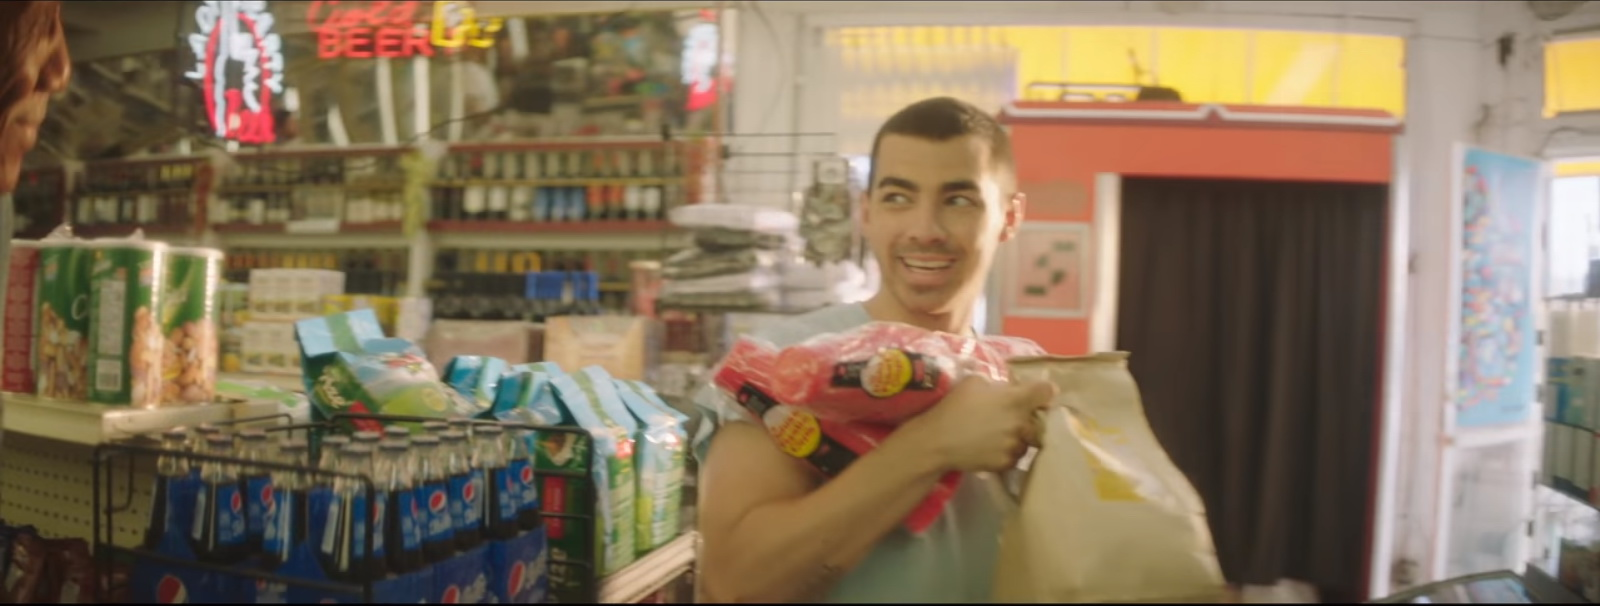 Pepsi - DNCE - Kissing Strangers ft. Nicki Minaj Official Music Video Product Placement